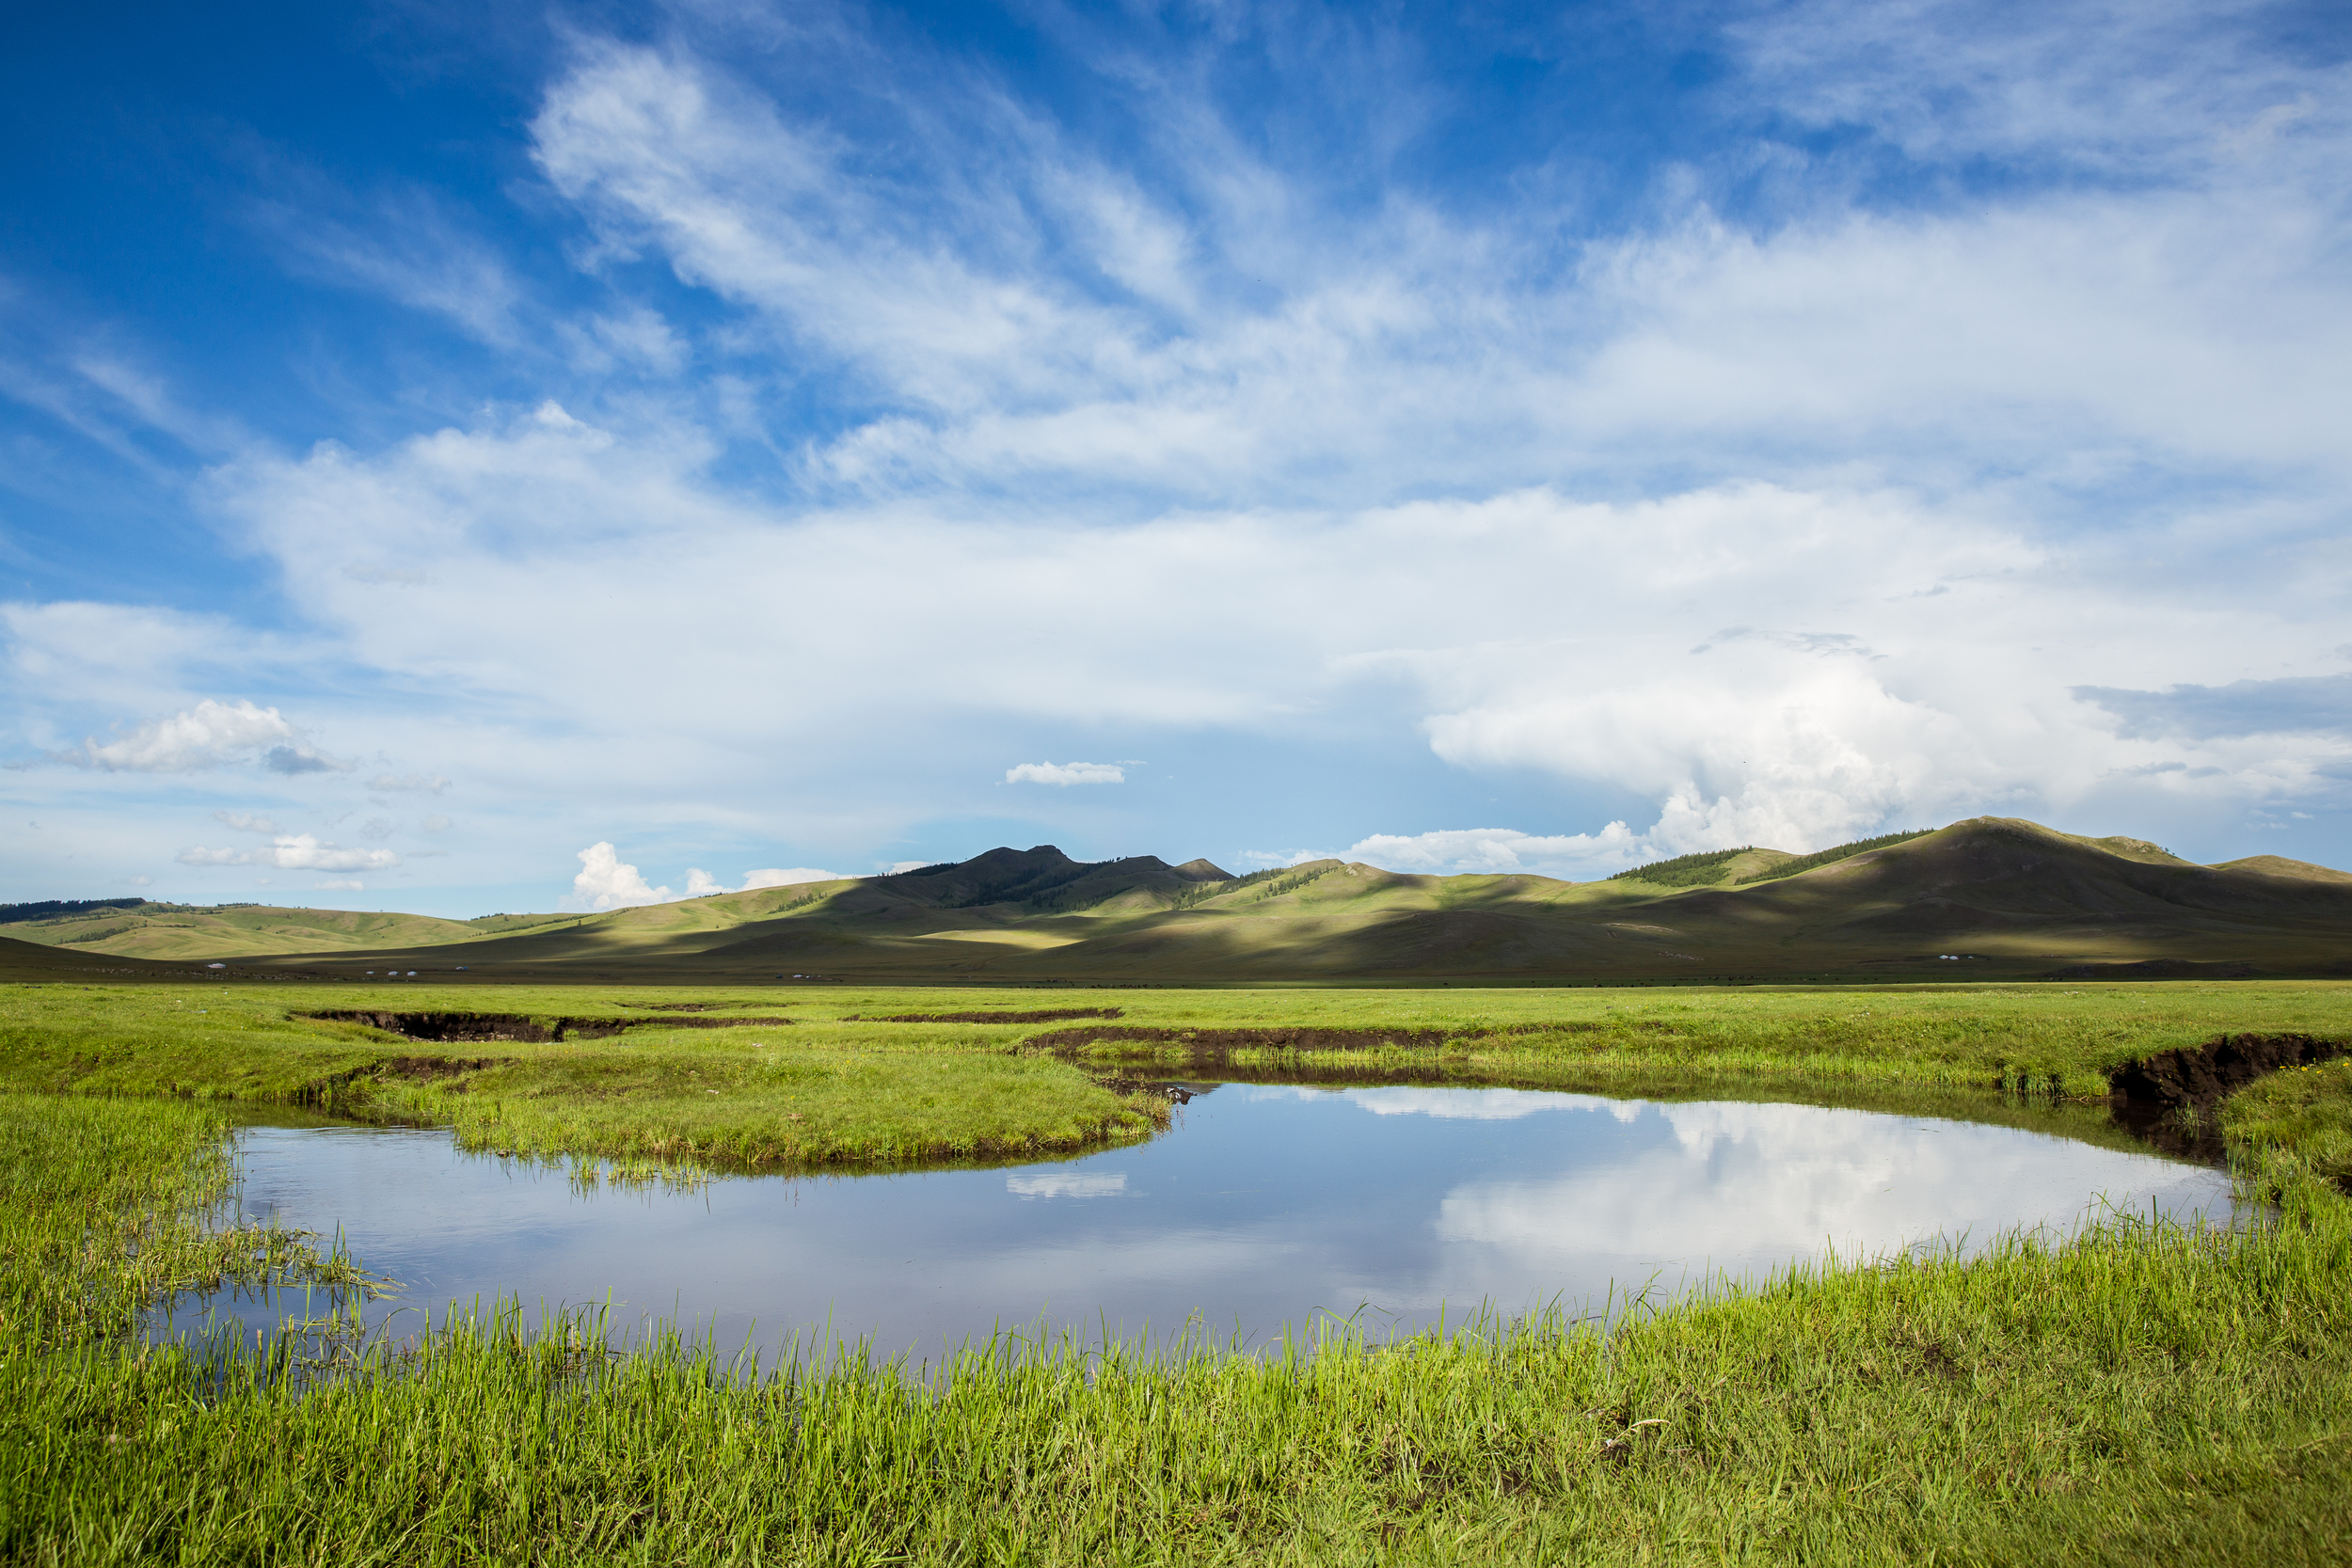 Day one of a 3 week adventure through the wilds of the remote wonderland that is Mongolia.